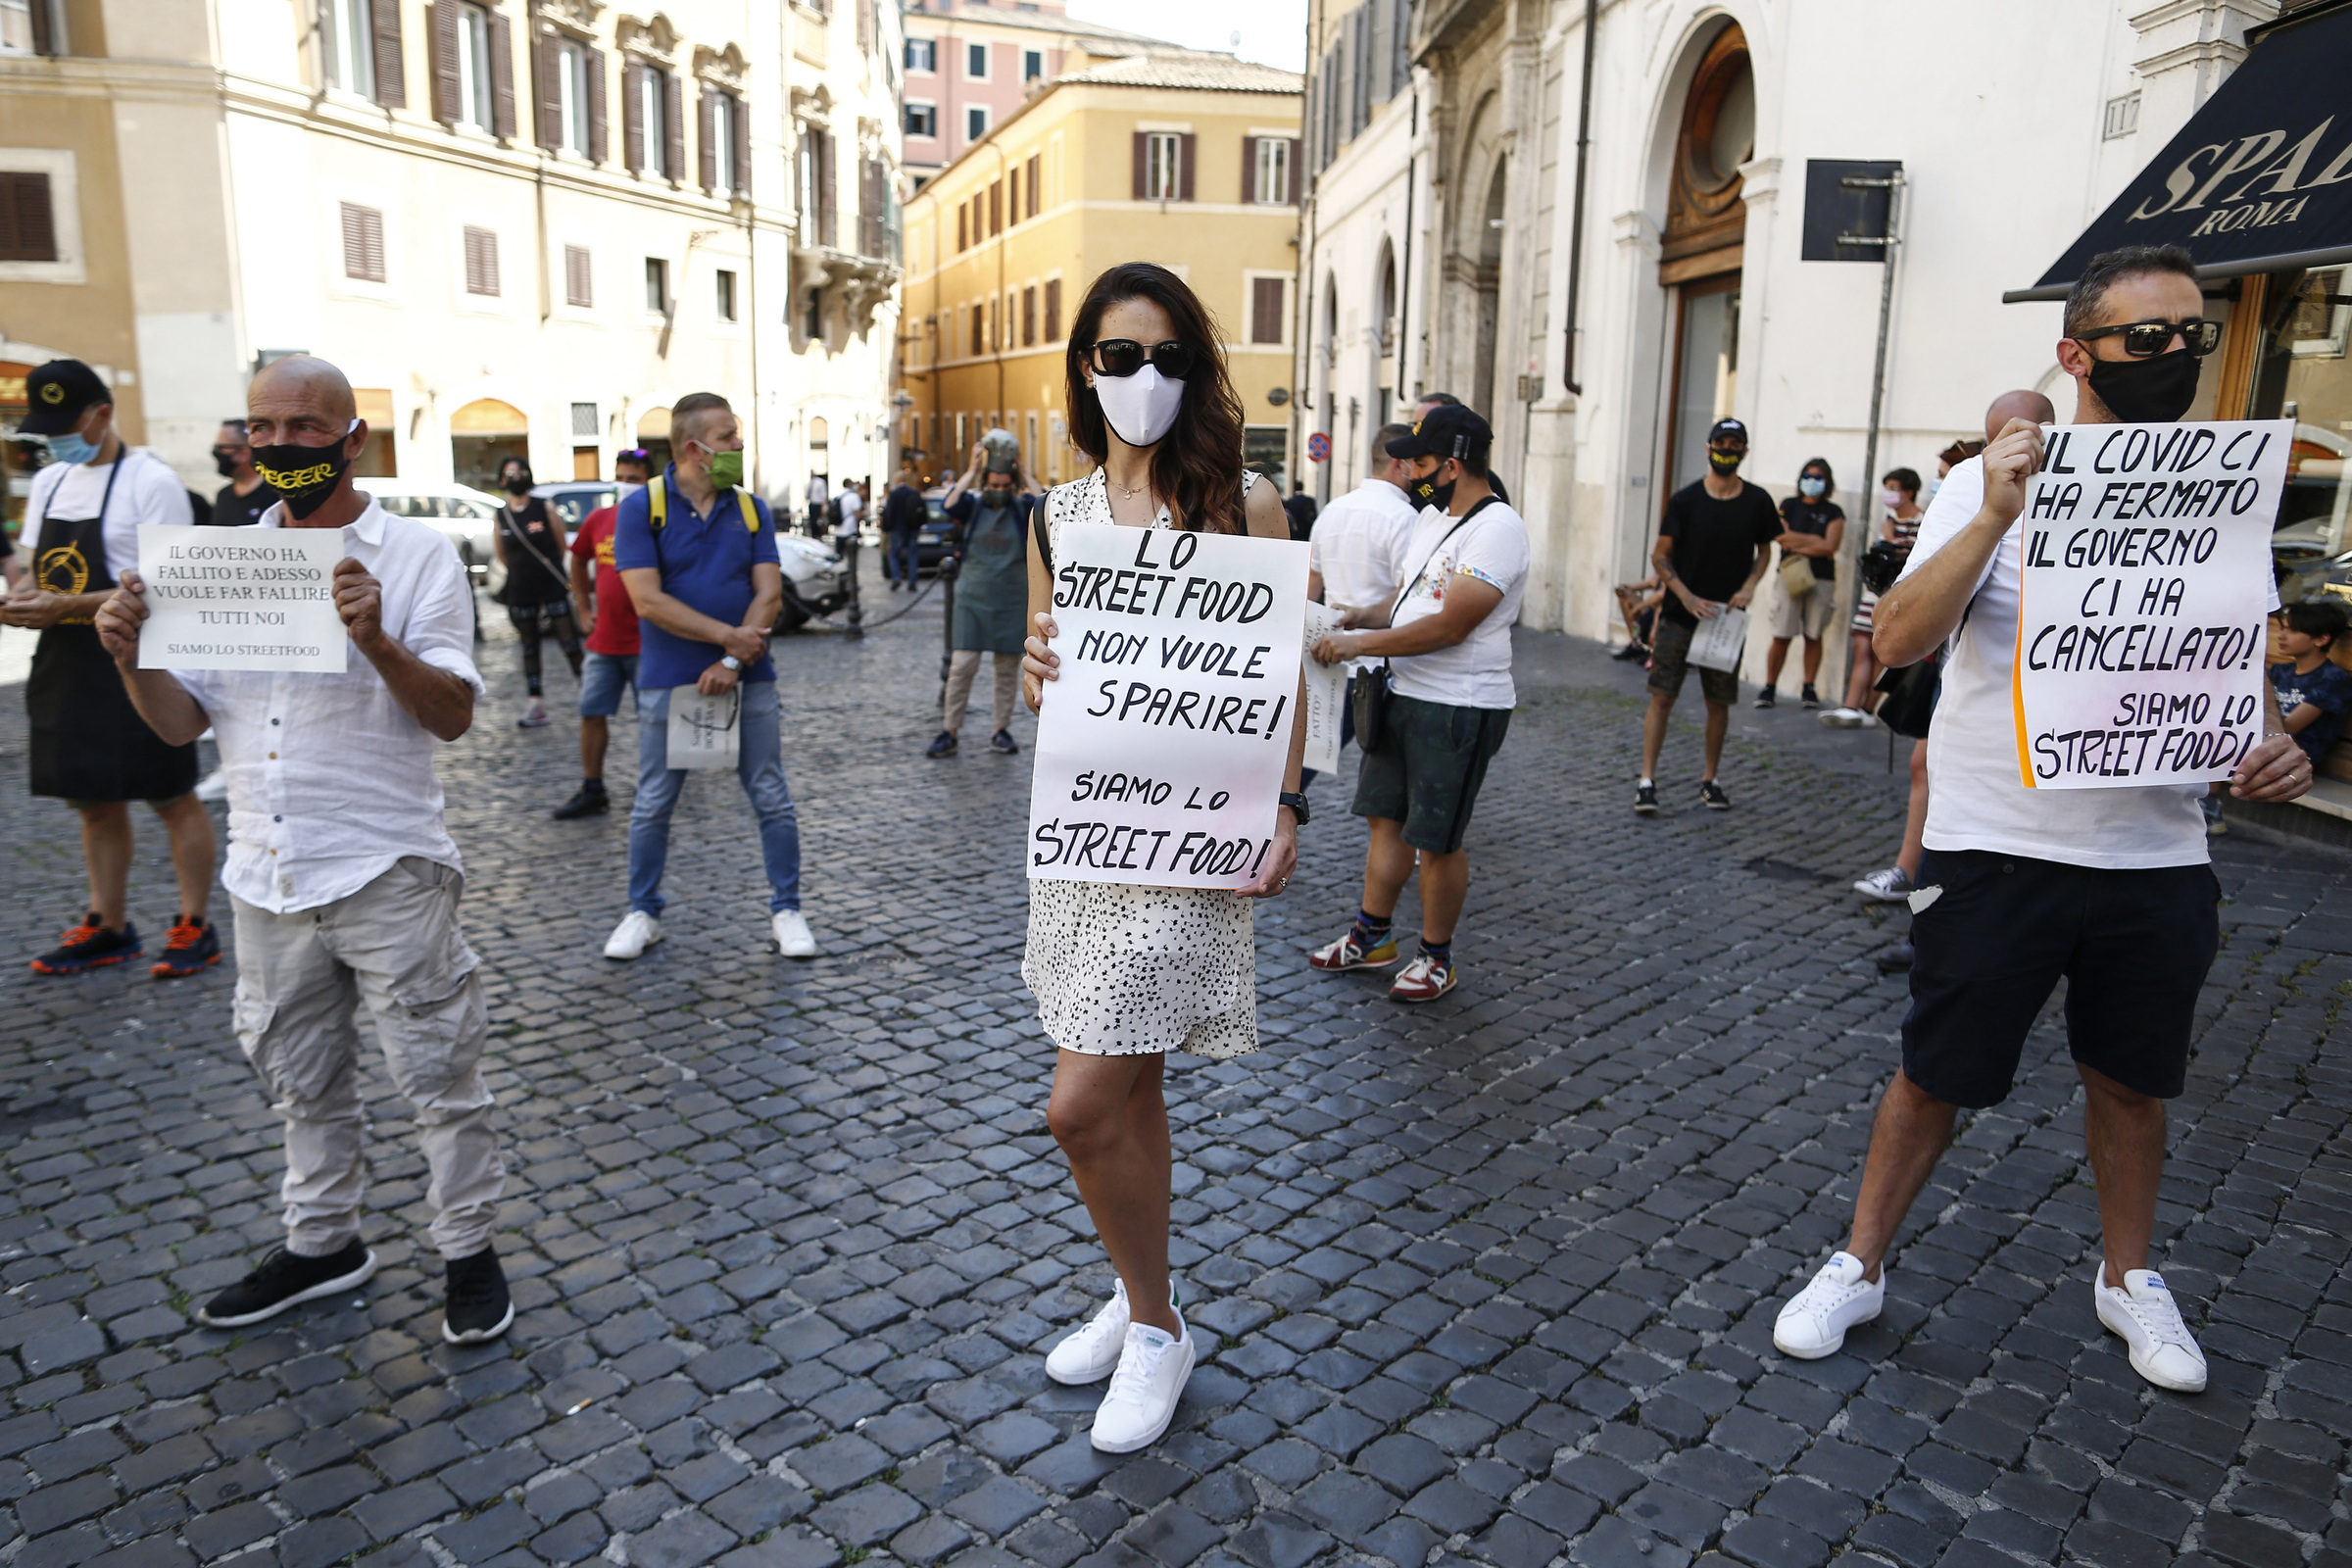 Foto Cecilia Fabiano/ LaPresse  23 Giugno 2020 Roma   (Italia) Cronaca  Flash mob degli operatori dello street food davanti a Montecitorio  Nella Foto : la manifestazione degli ambulanti  Photo Cecilia Fabiano/LaPresse June 23 , 2020  Rome  (Italy)  News Street food workers protesting  in front of the government palace  In the pic : the demonstration